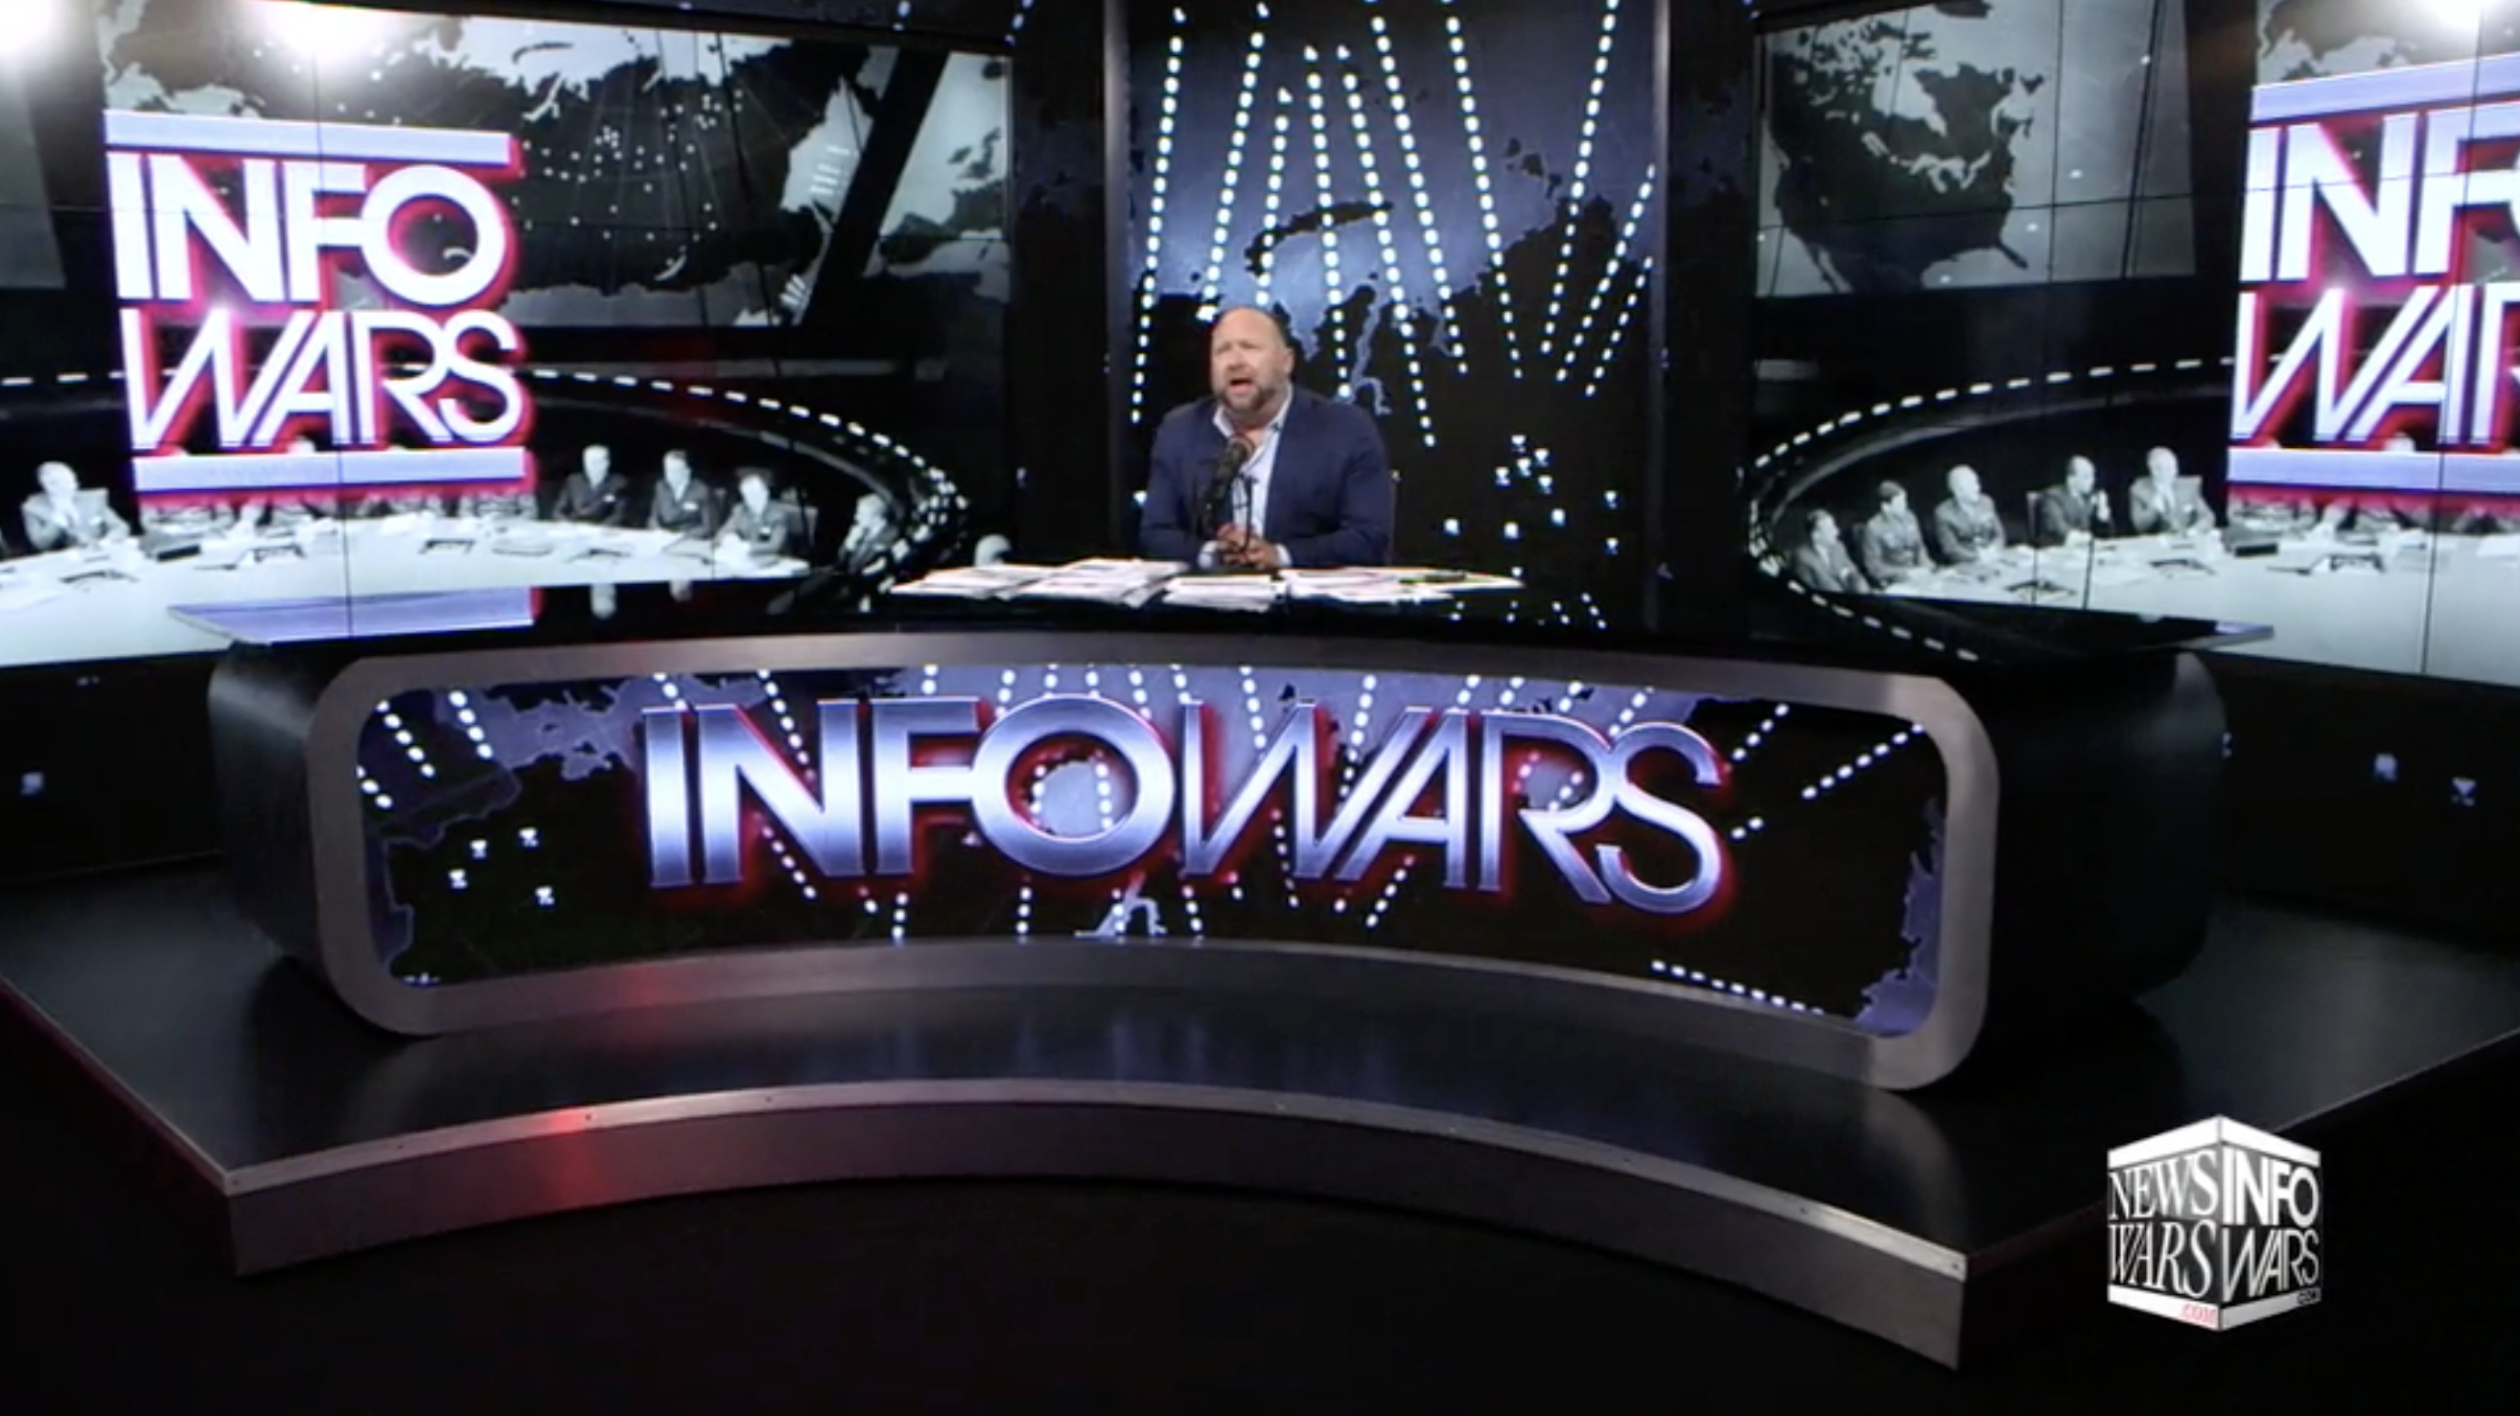 Alex Jones Infowars Studio EXZM September 11th 2020